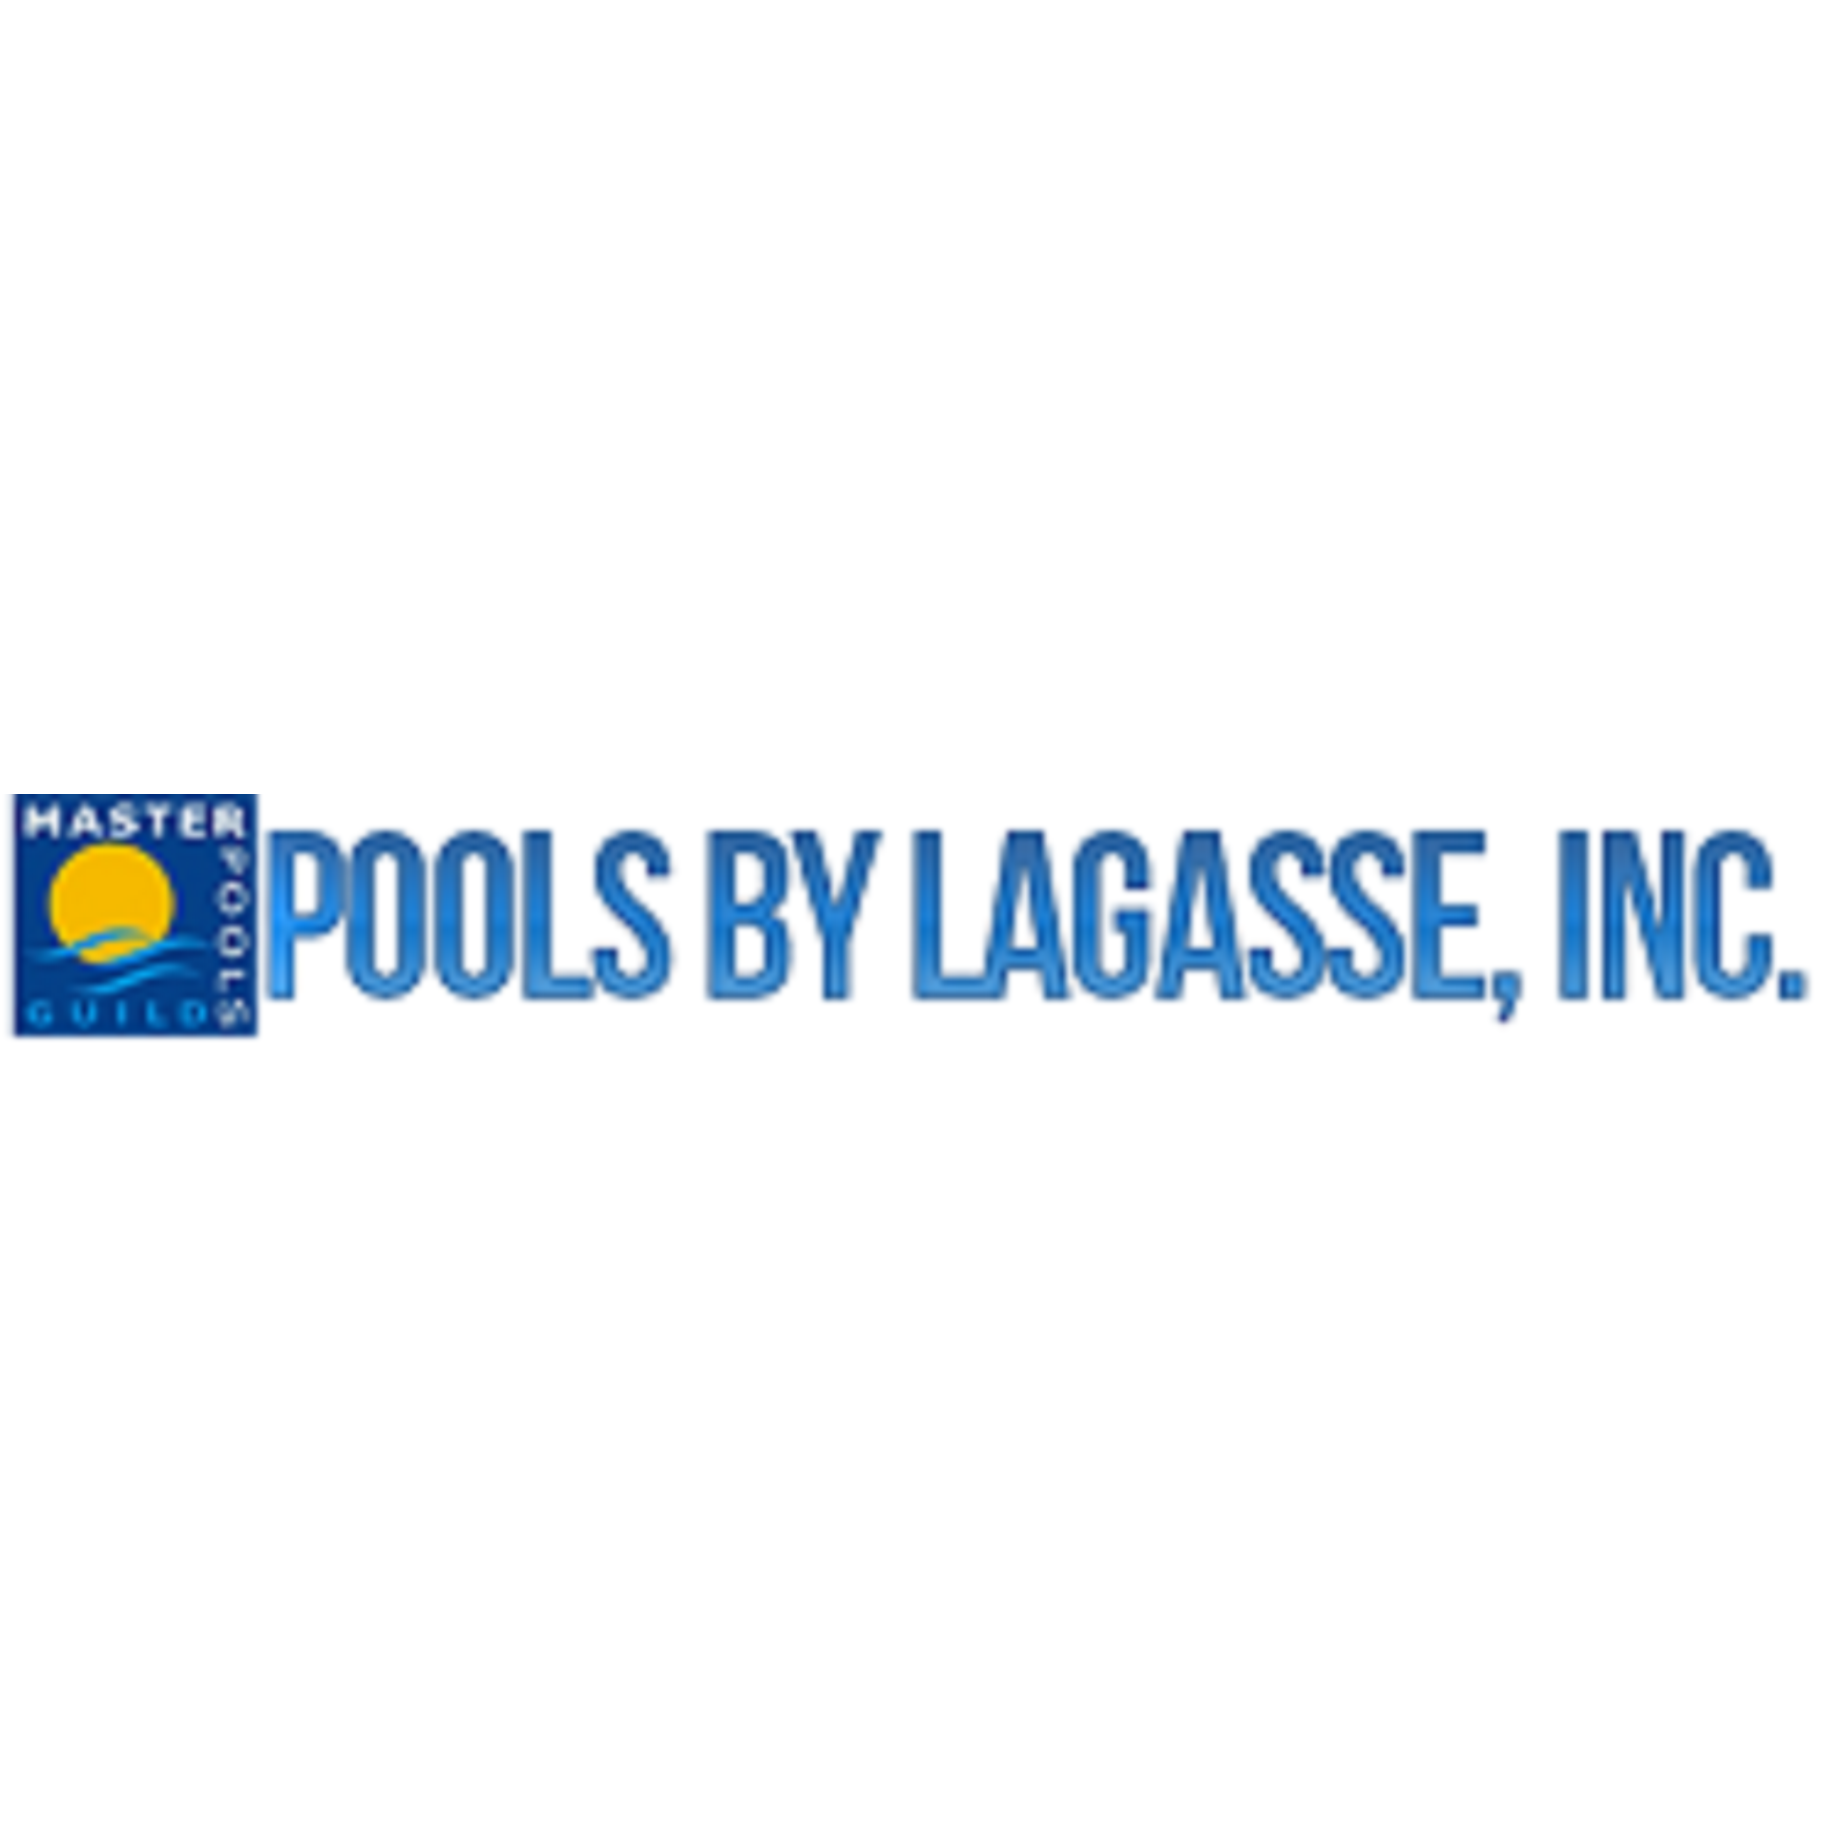 Pools By Lagasse Inc image 4